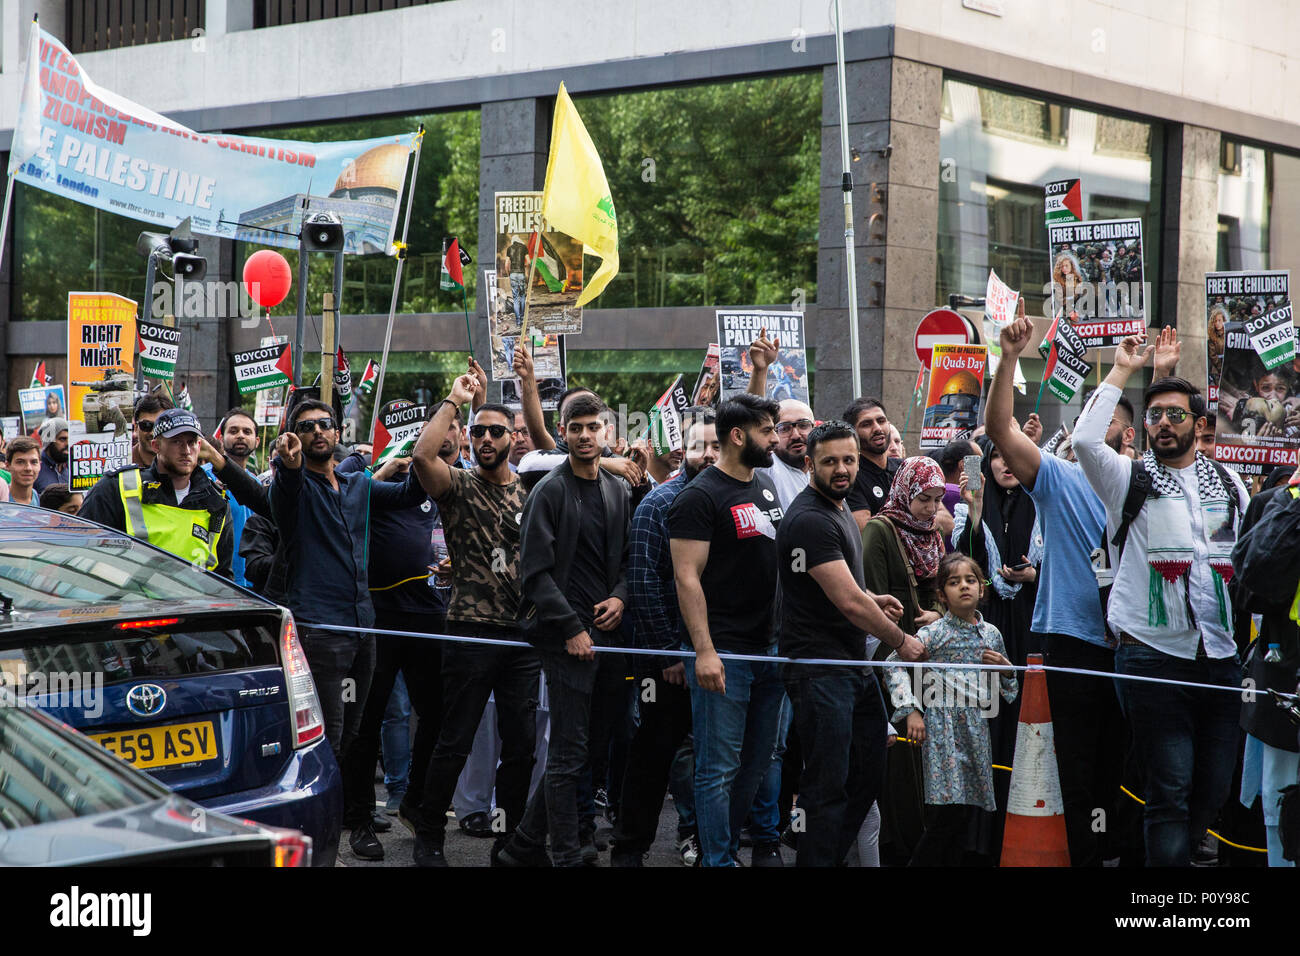 London, UK. 10th June, 2018. Hundreds of people take part in the pro-Palestinian Al Quds Day march through central London organised by the Islamic Human Rights Commission. An international event, it began in Iran in 1979. Quds is the Arabic name for Jerusalem. Credit: Mark Kerrison/Alamy Live News - Stock Image